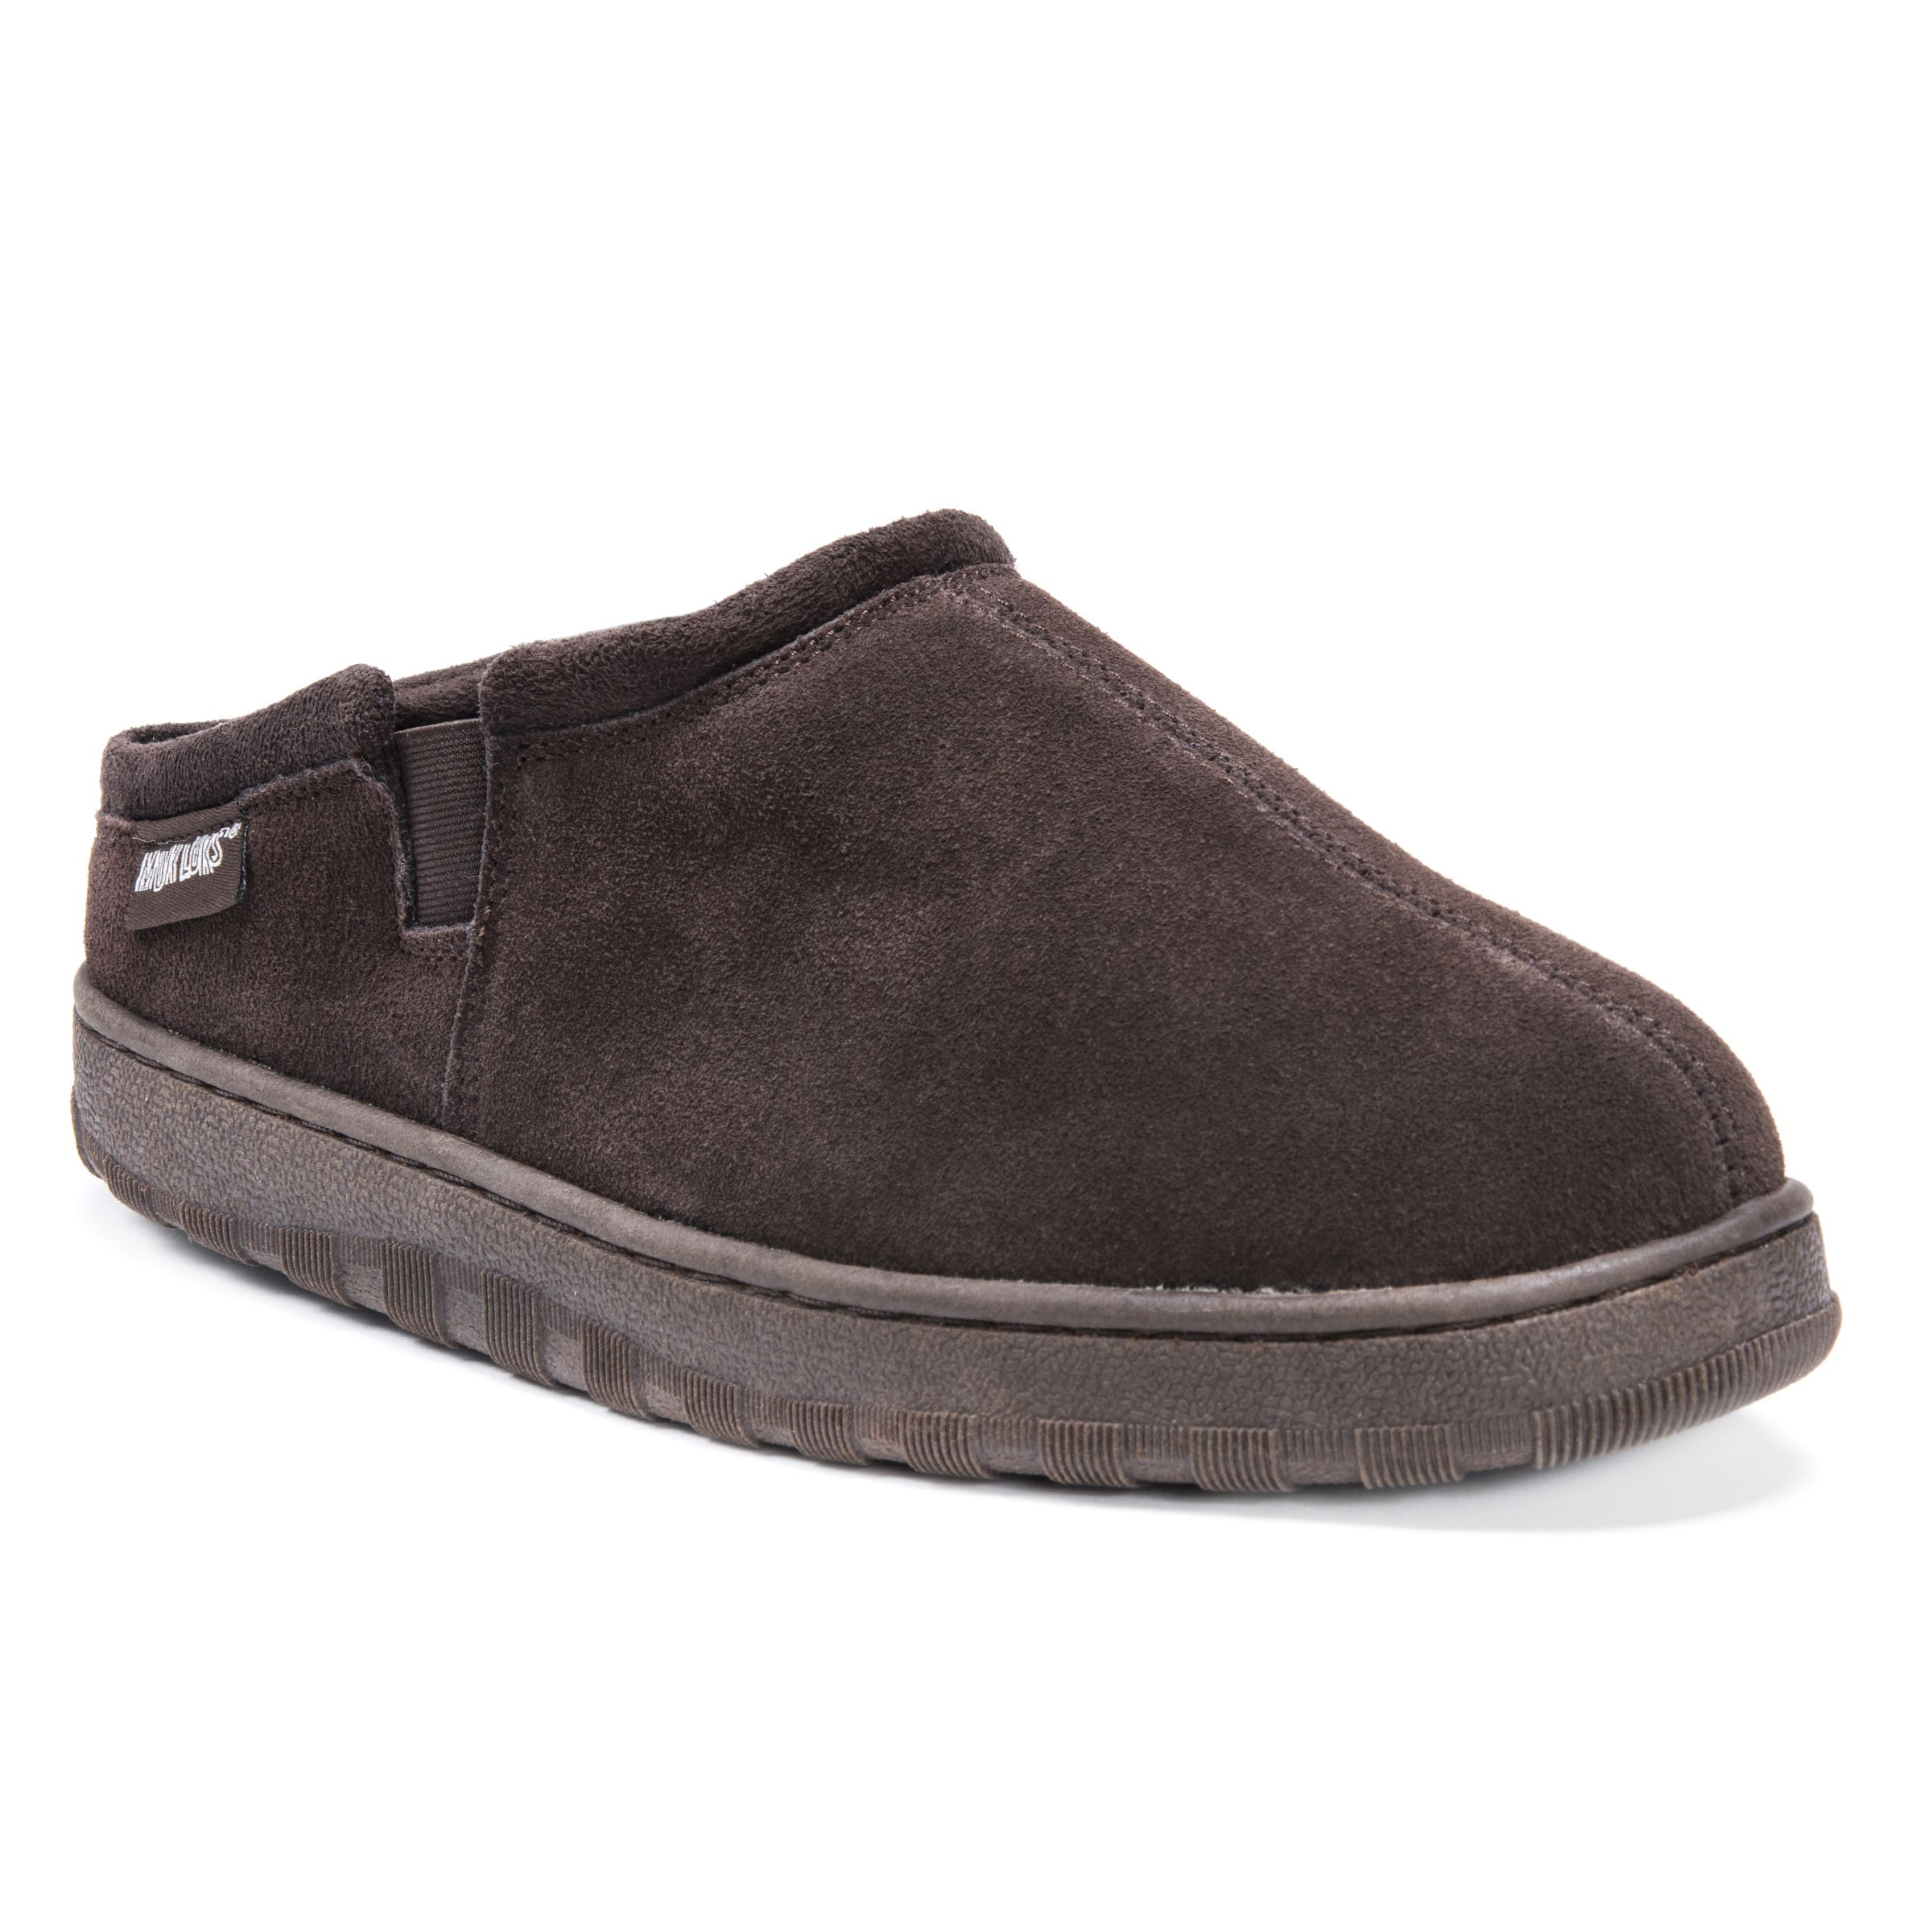 Mens House Shoes With Arch Support House Plan 2017